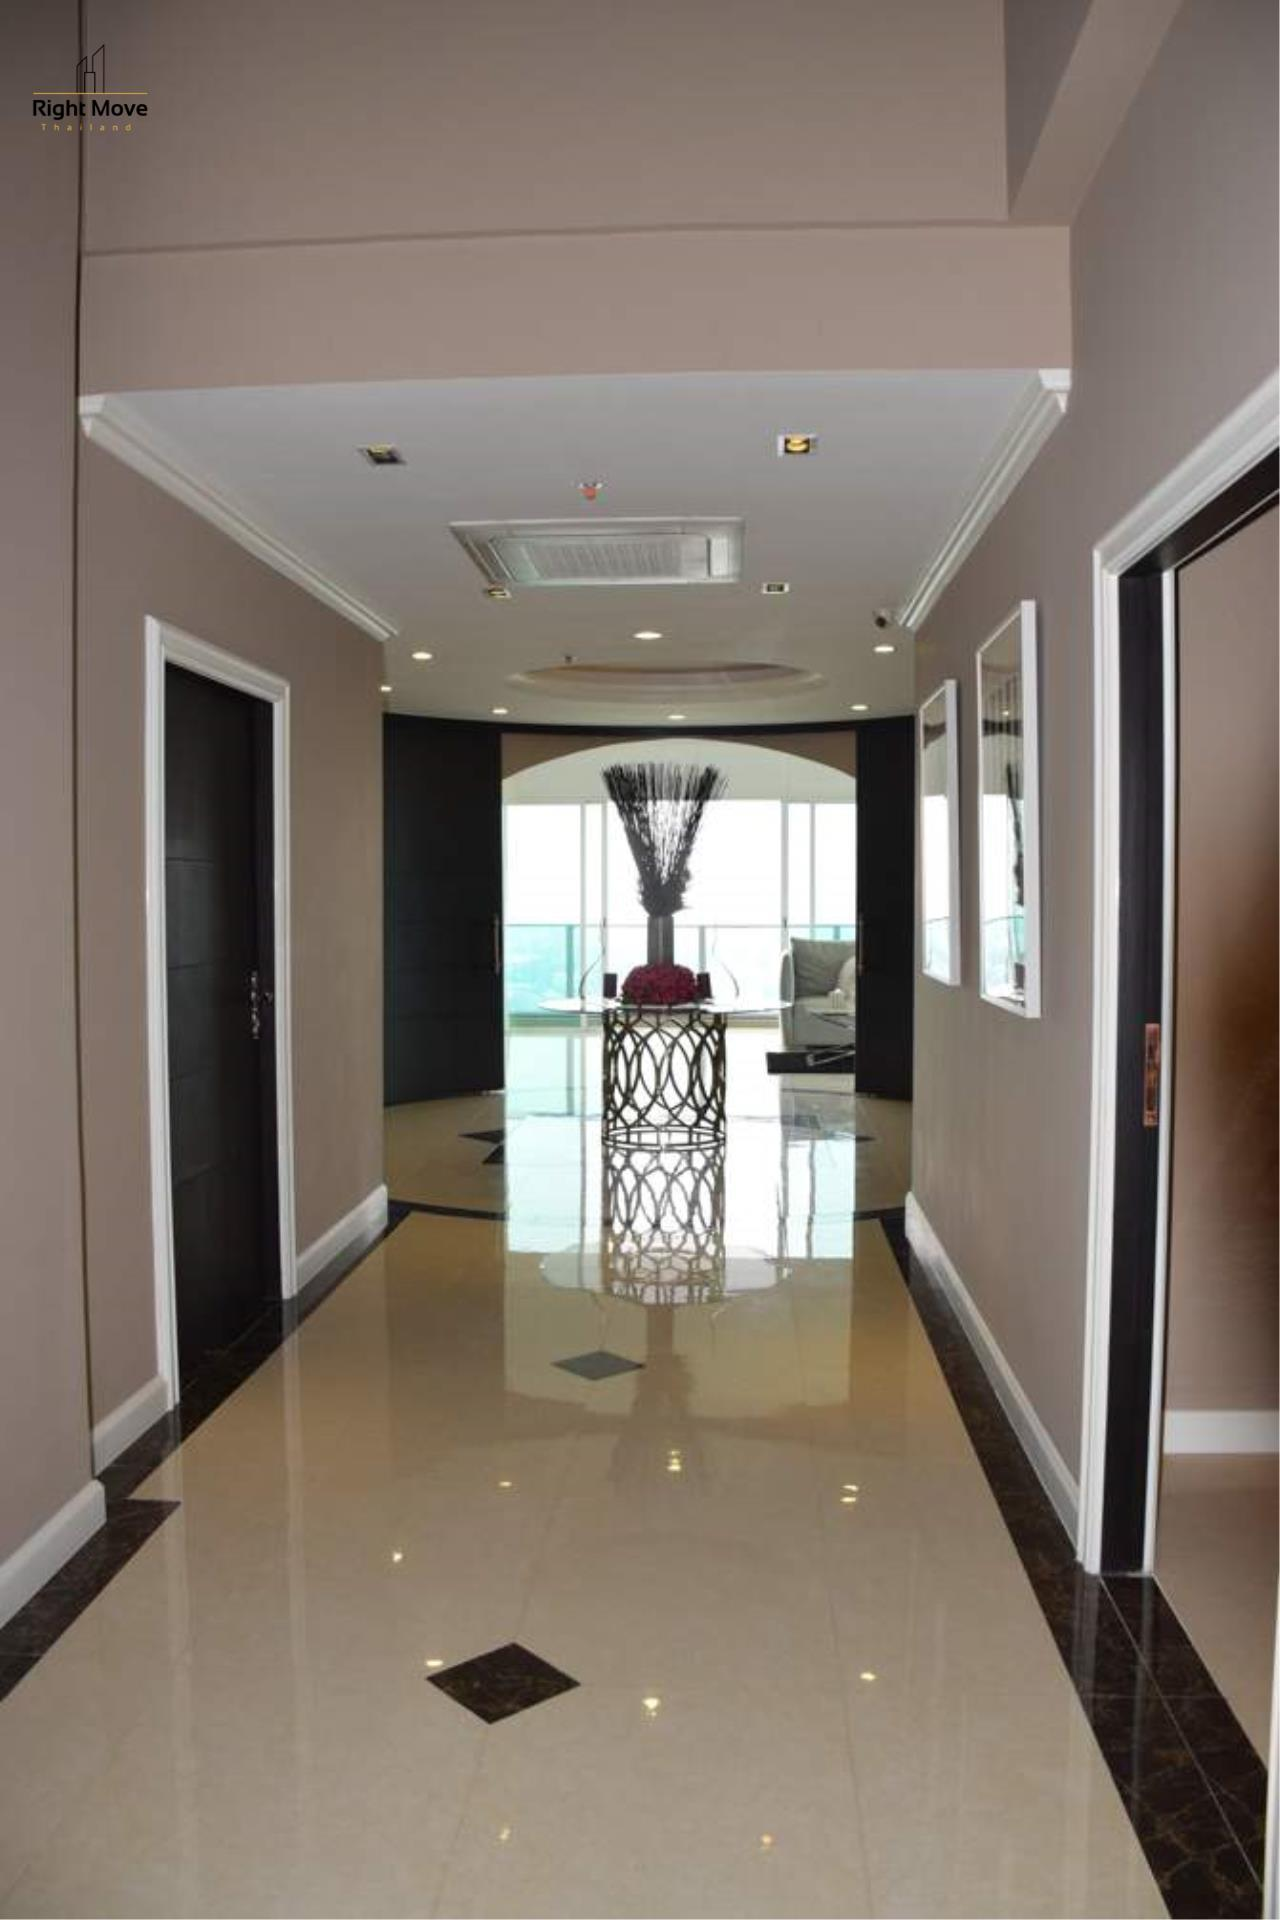 Right Move Thailand Agency's CA4297 Penthouse Duplex Millennium Residence For Rent - 250,000 THB - 316.85 Sqm 1